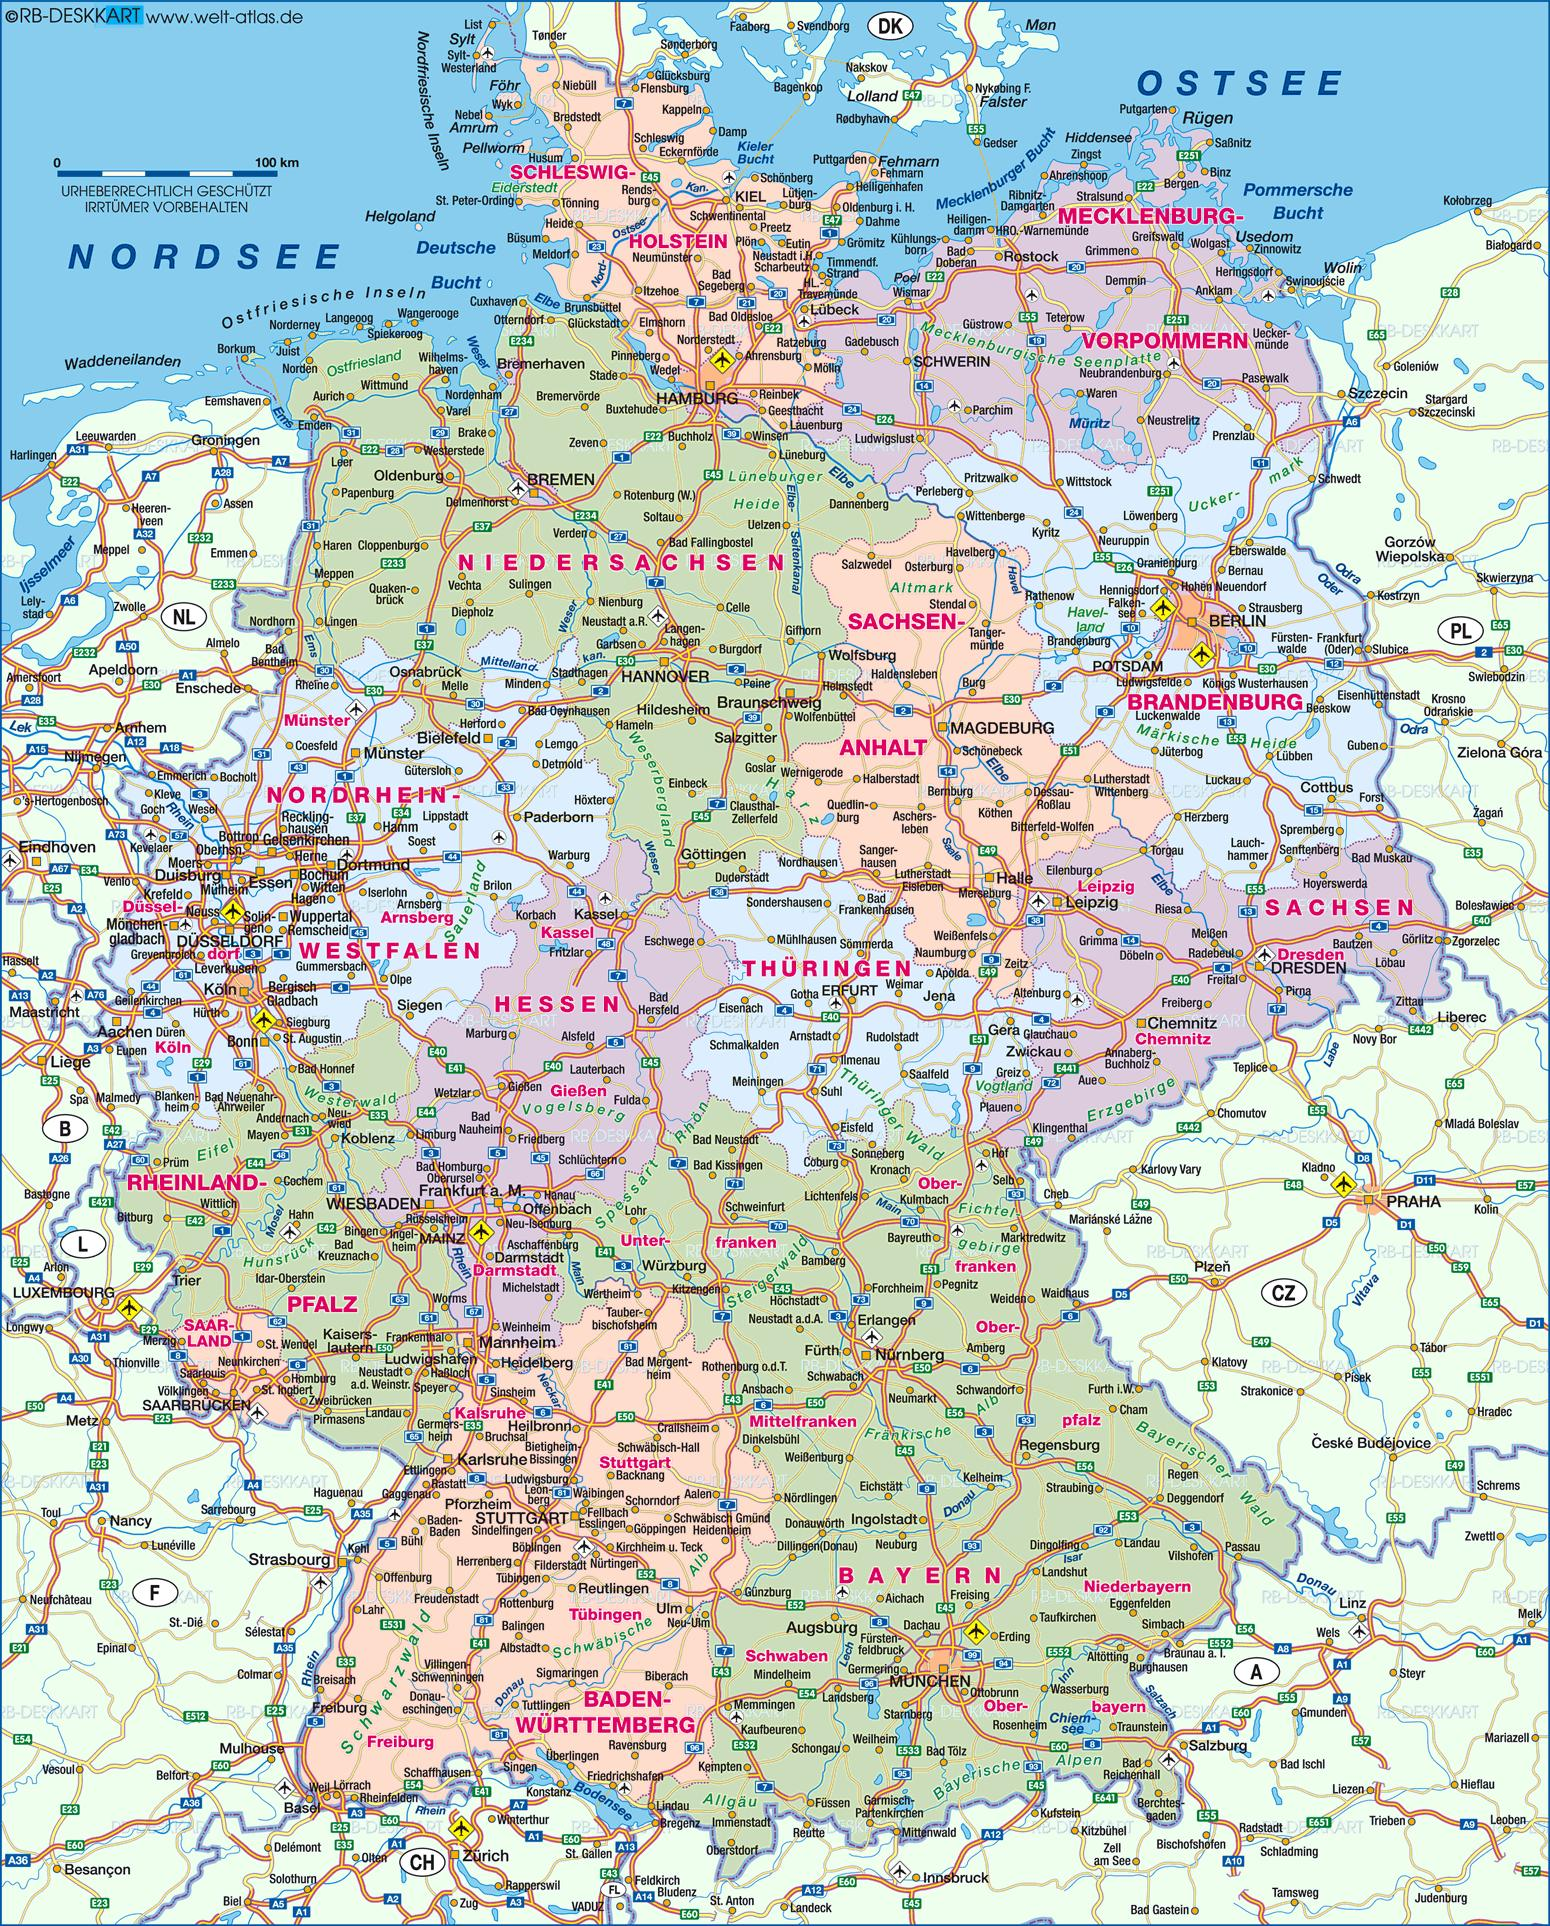 Show Me A Map Of Germany.Germany Map Show Me A Map Of Germany Western Europe Europe